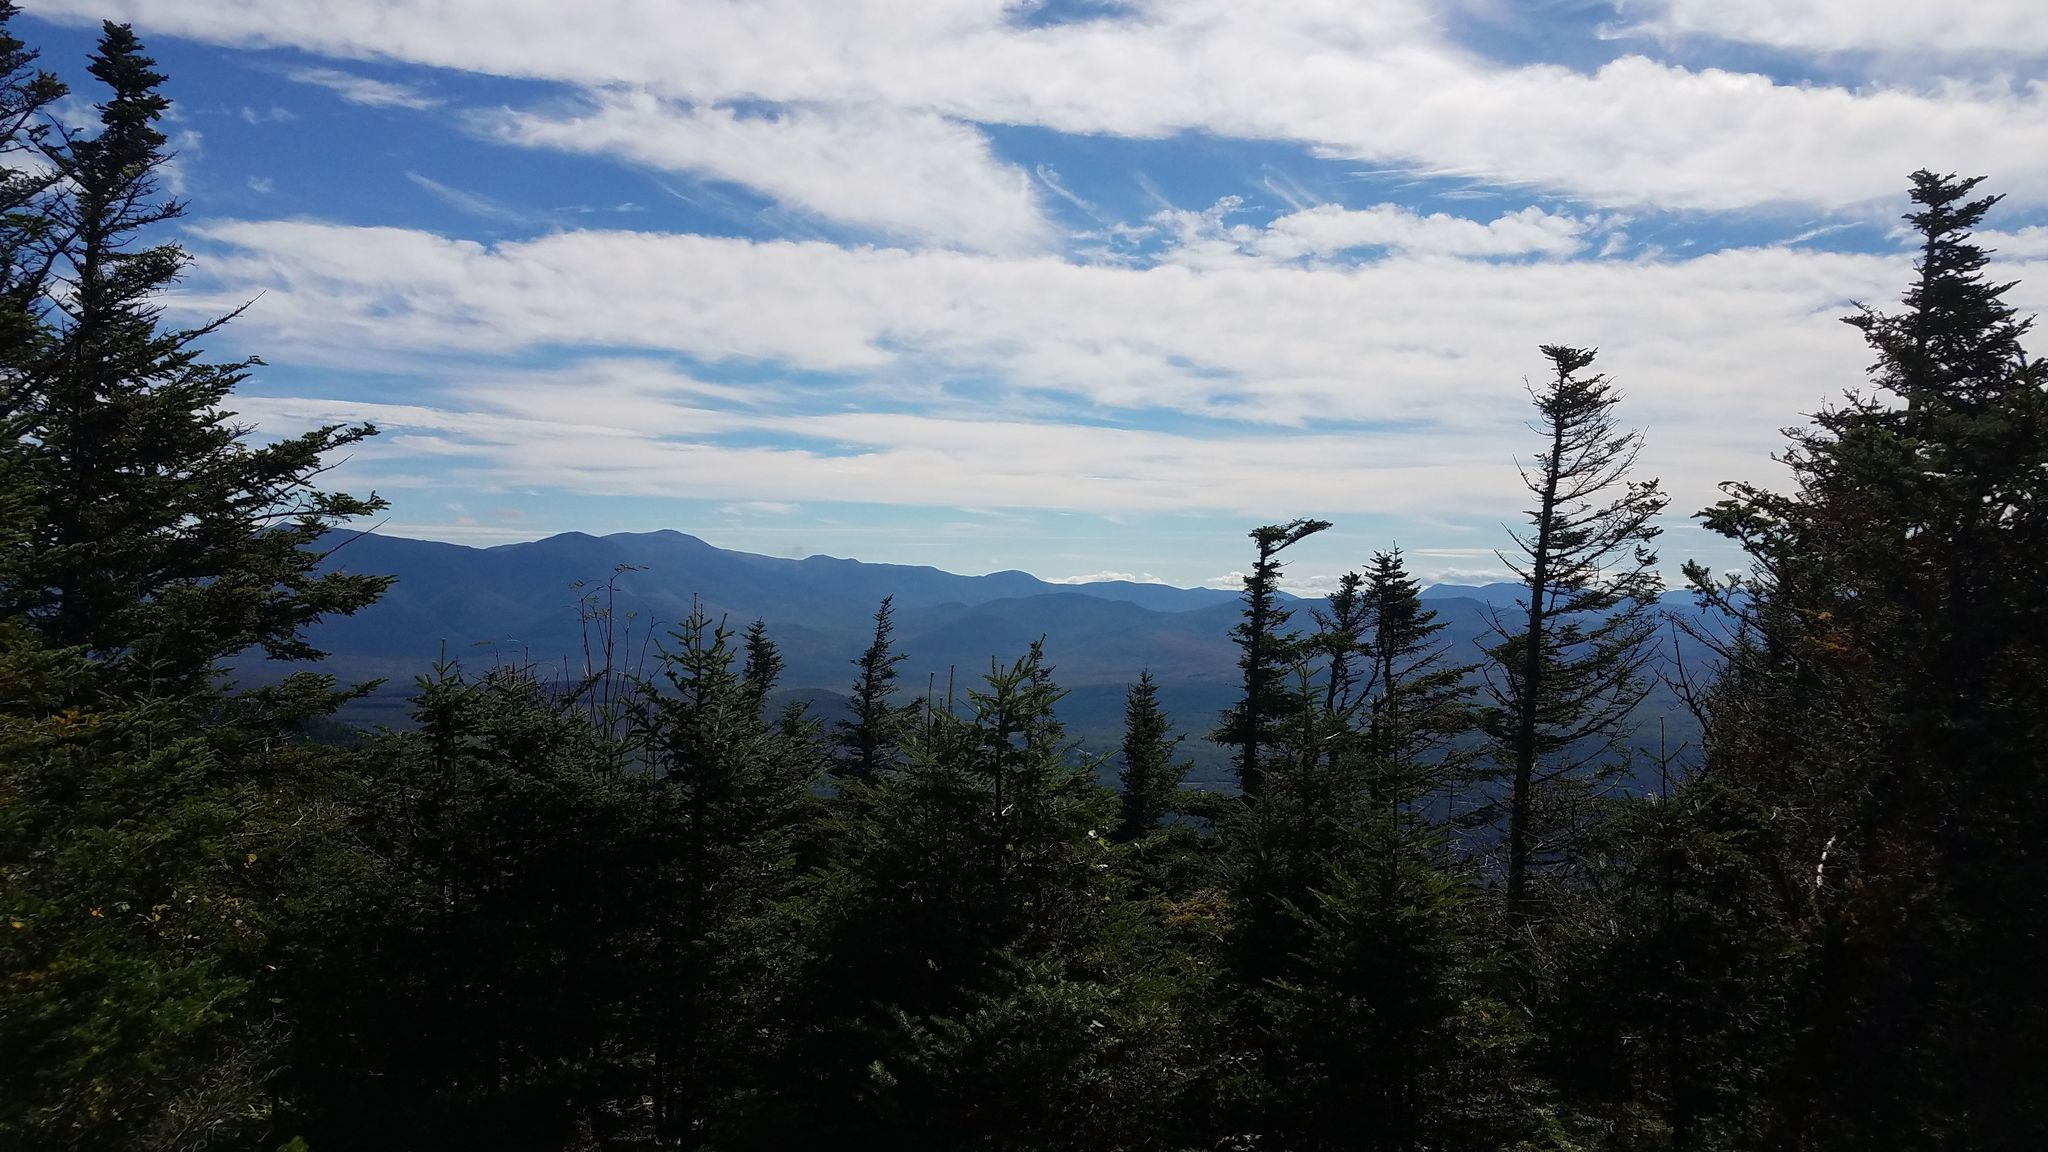 Mount Waumbek Hiking Trail Guide: Map, Trail Descriptions, Pictures & More